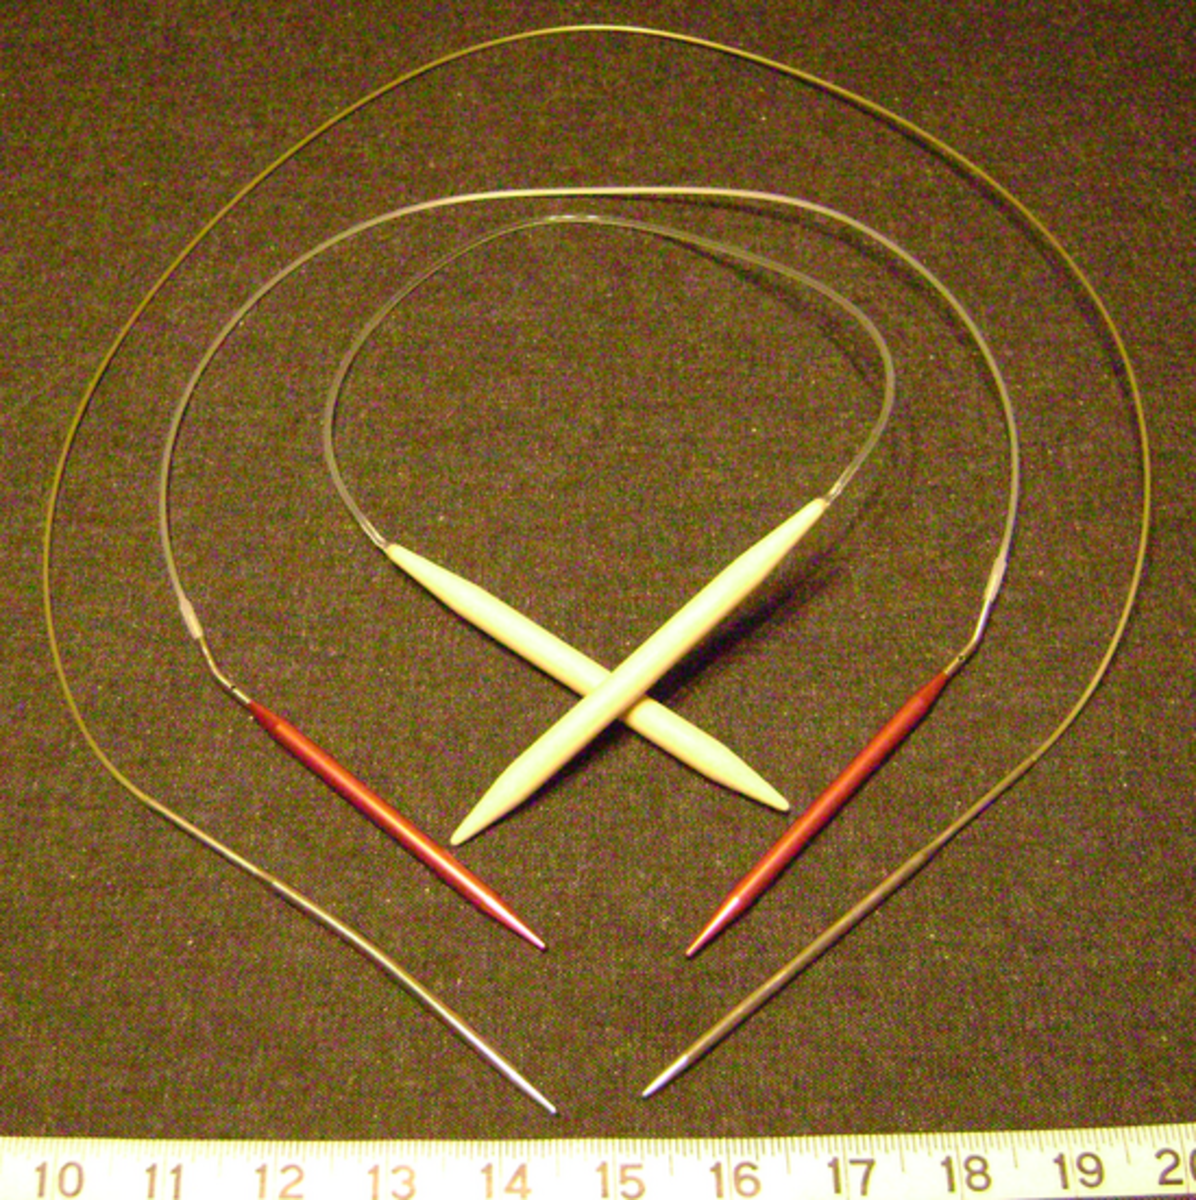 Circular knitting needles in 3 different sizes and 3 different lengths.